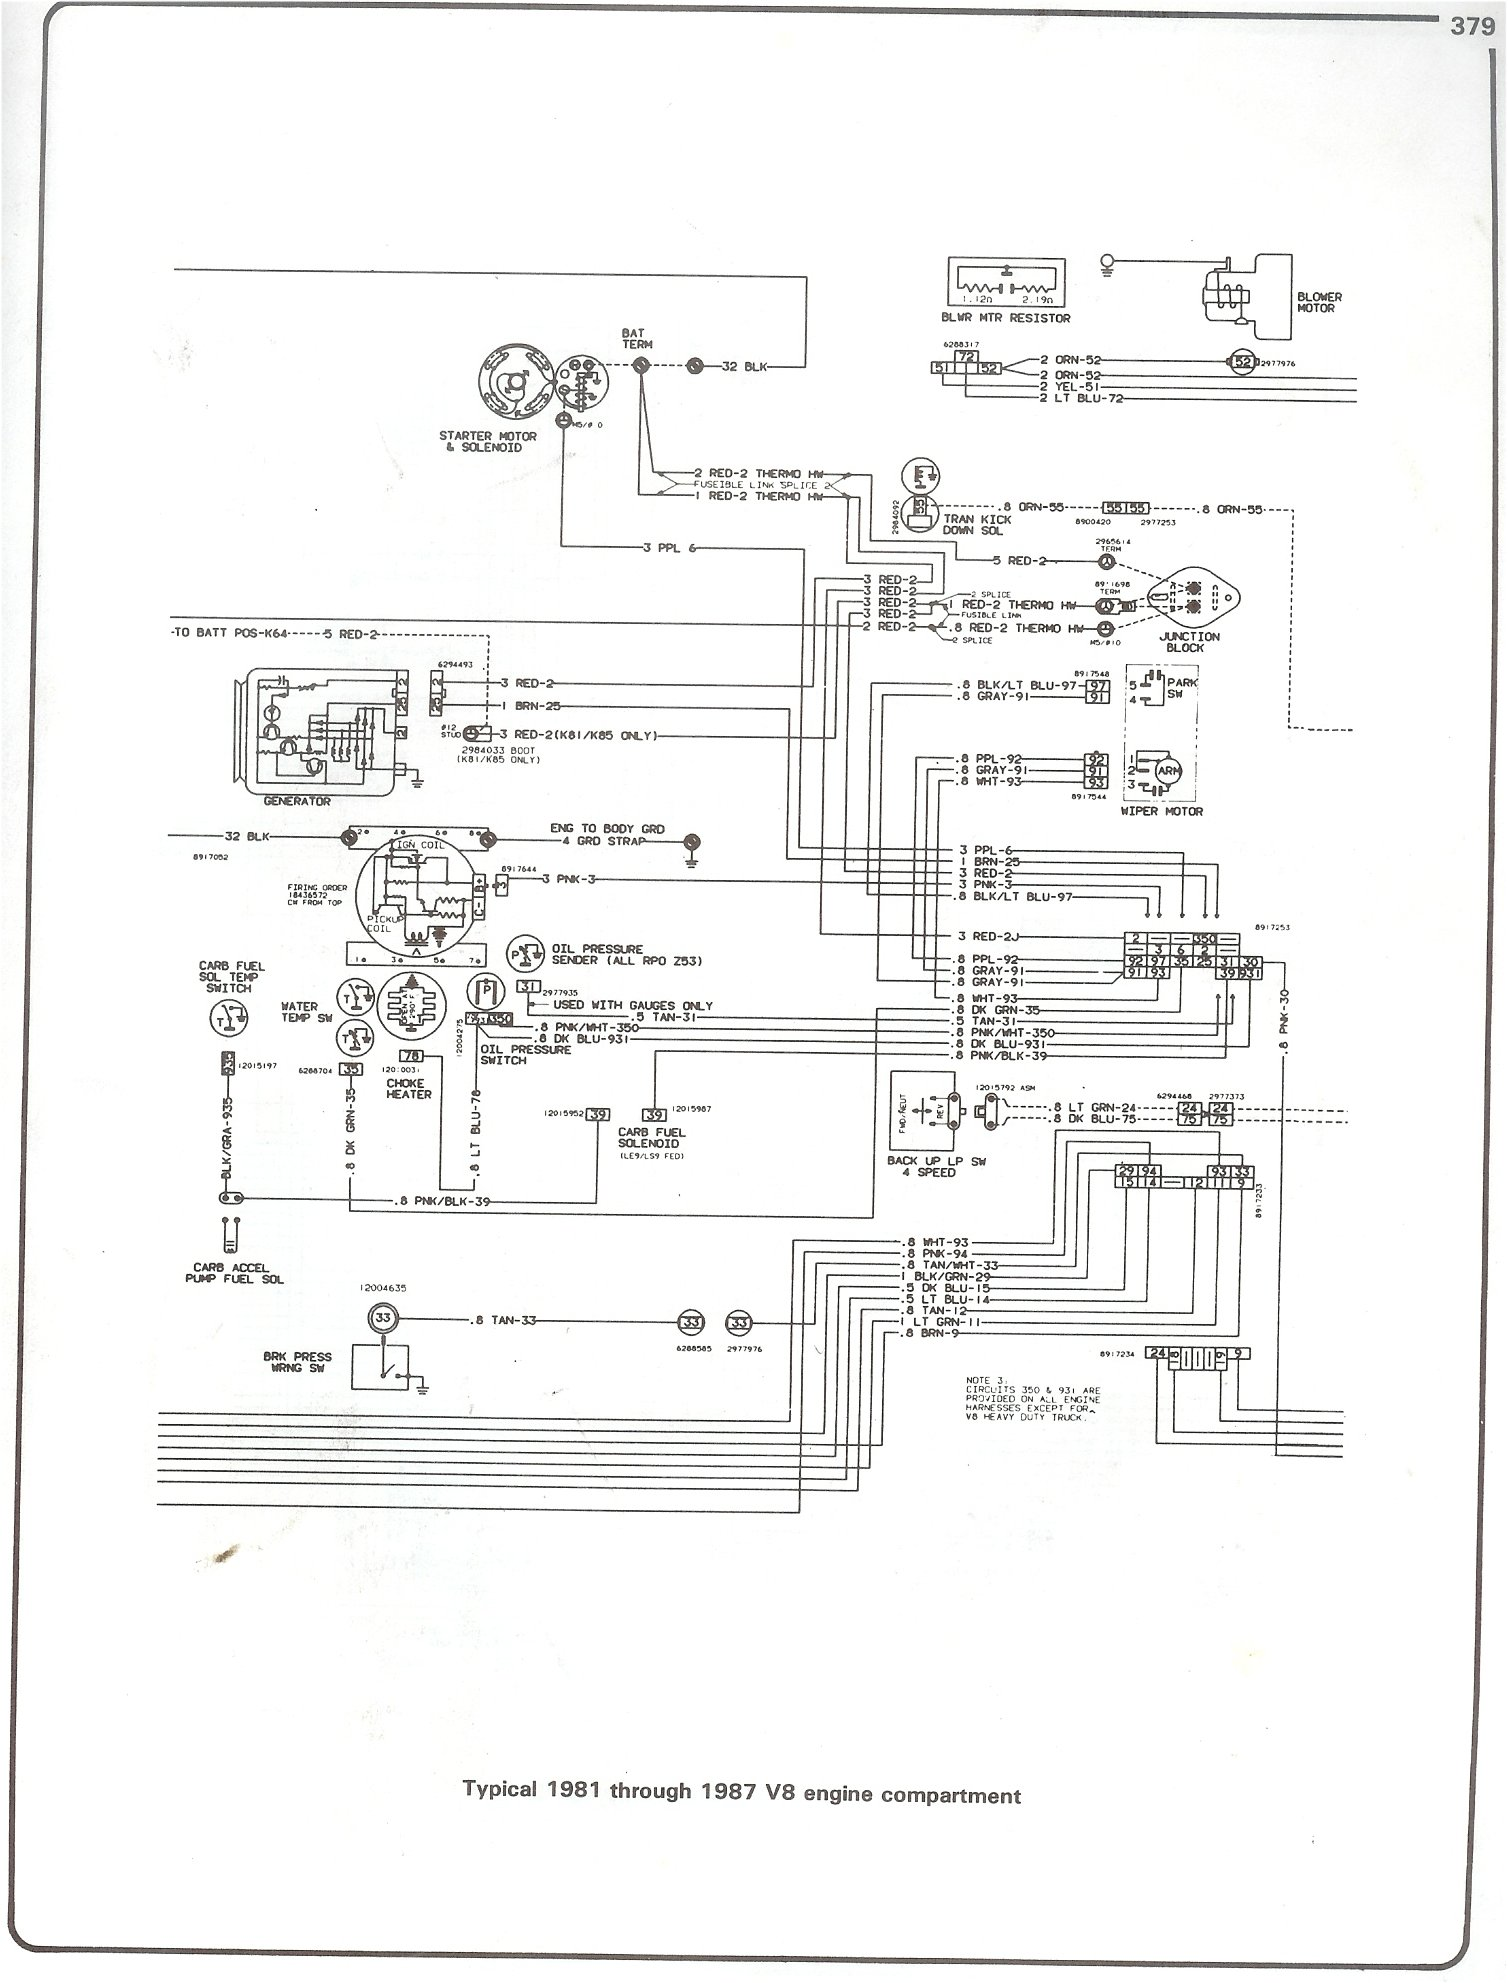 Complete 73 87 Wiring Diagrams Isuzu Stock Radio Schematic 81 V8 Engine Compartment